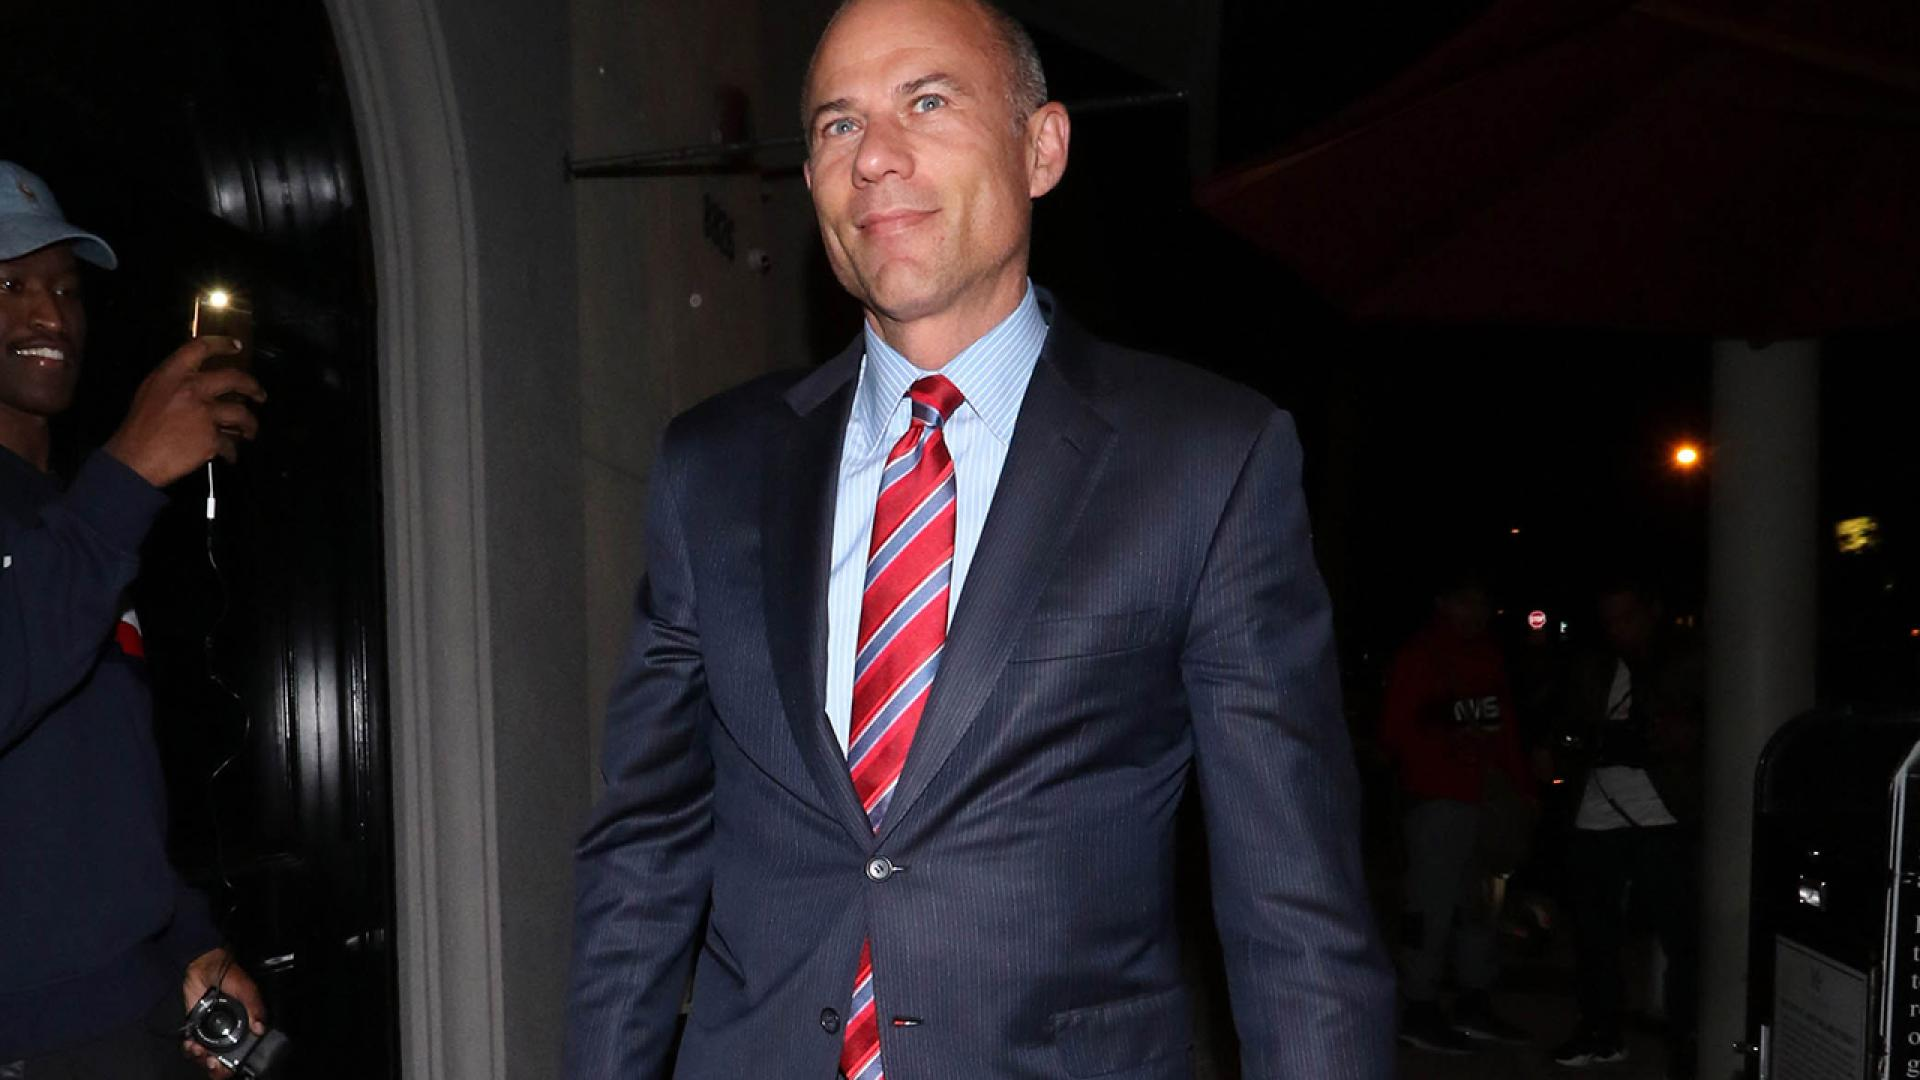 Michael Avenatti has been charged with attempting to extort Nike out of millions of dollars, according to federal prosecutors.